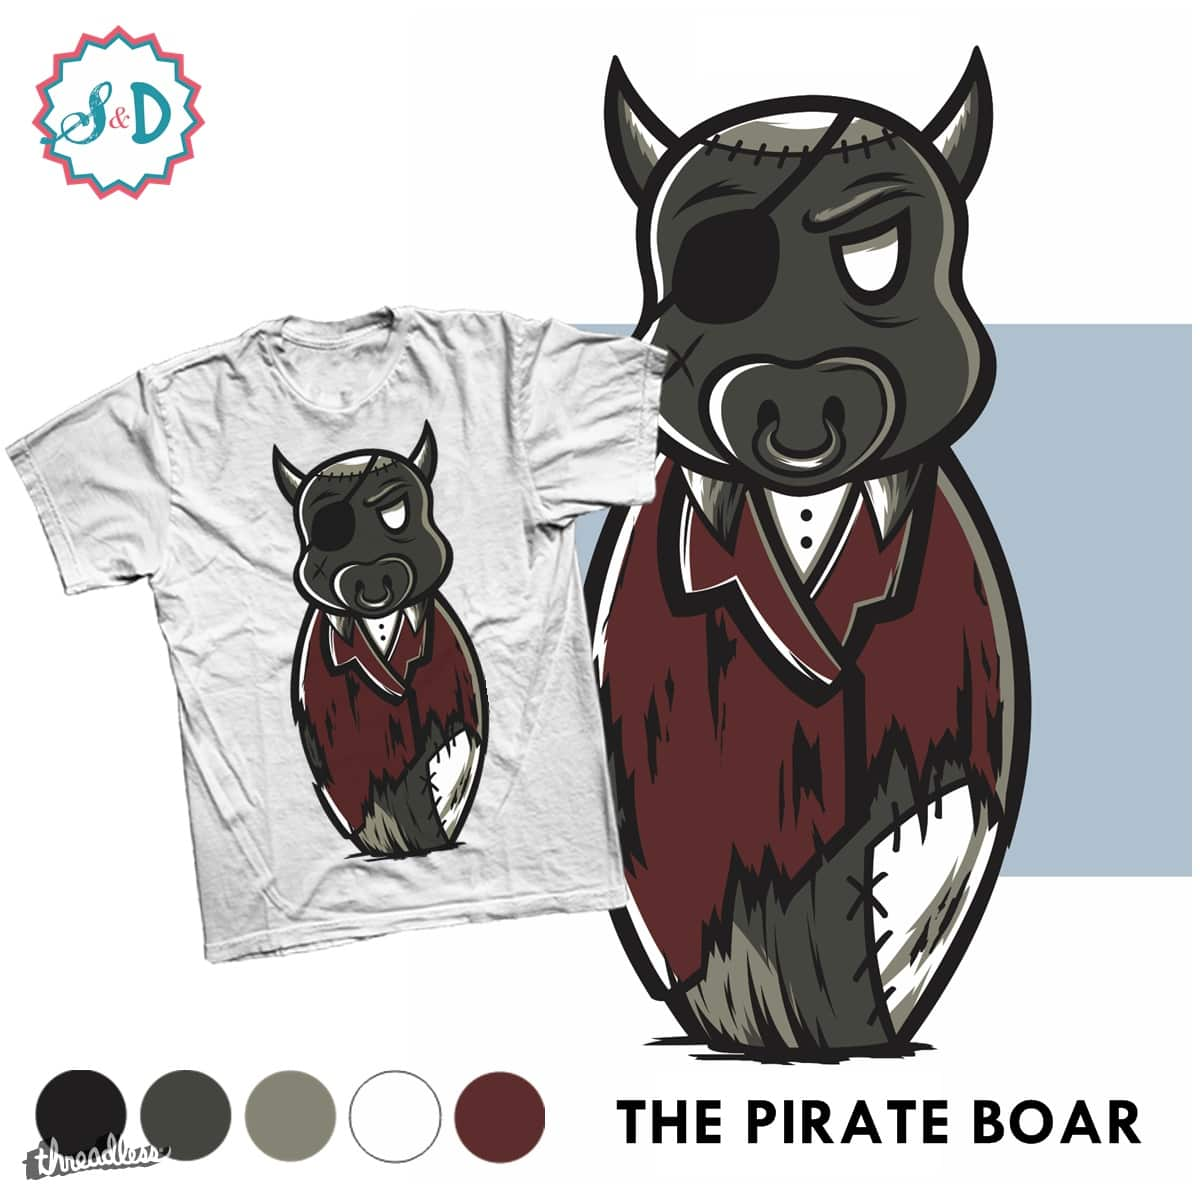 THE PIRATE BOAR by ScribbleNDoodle on Threadless